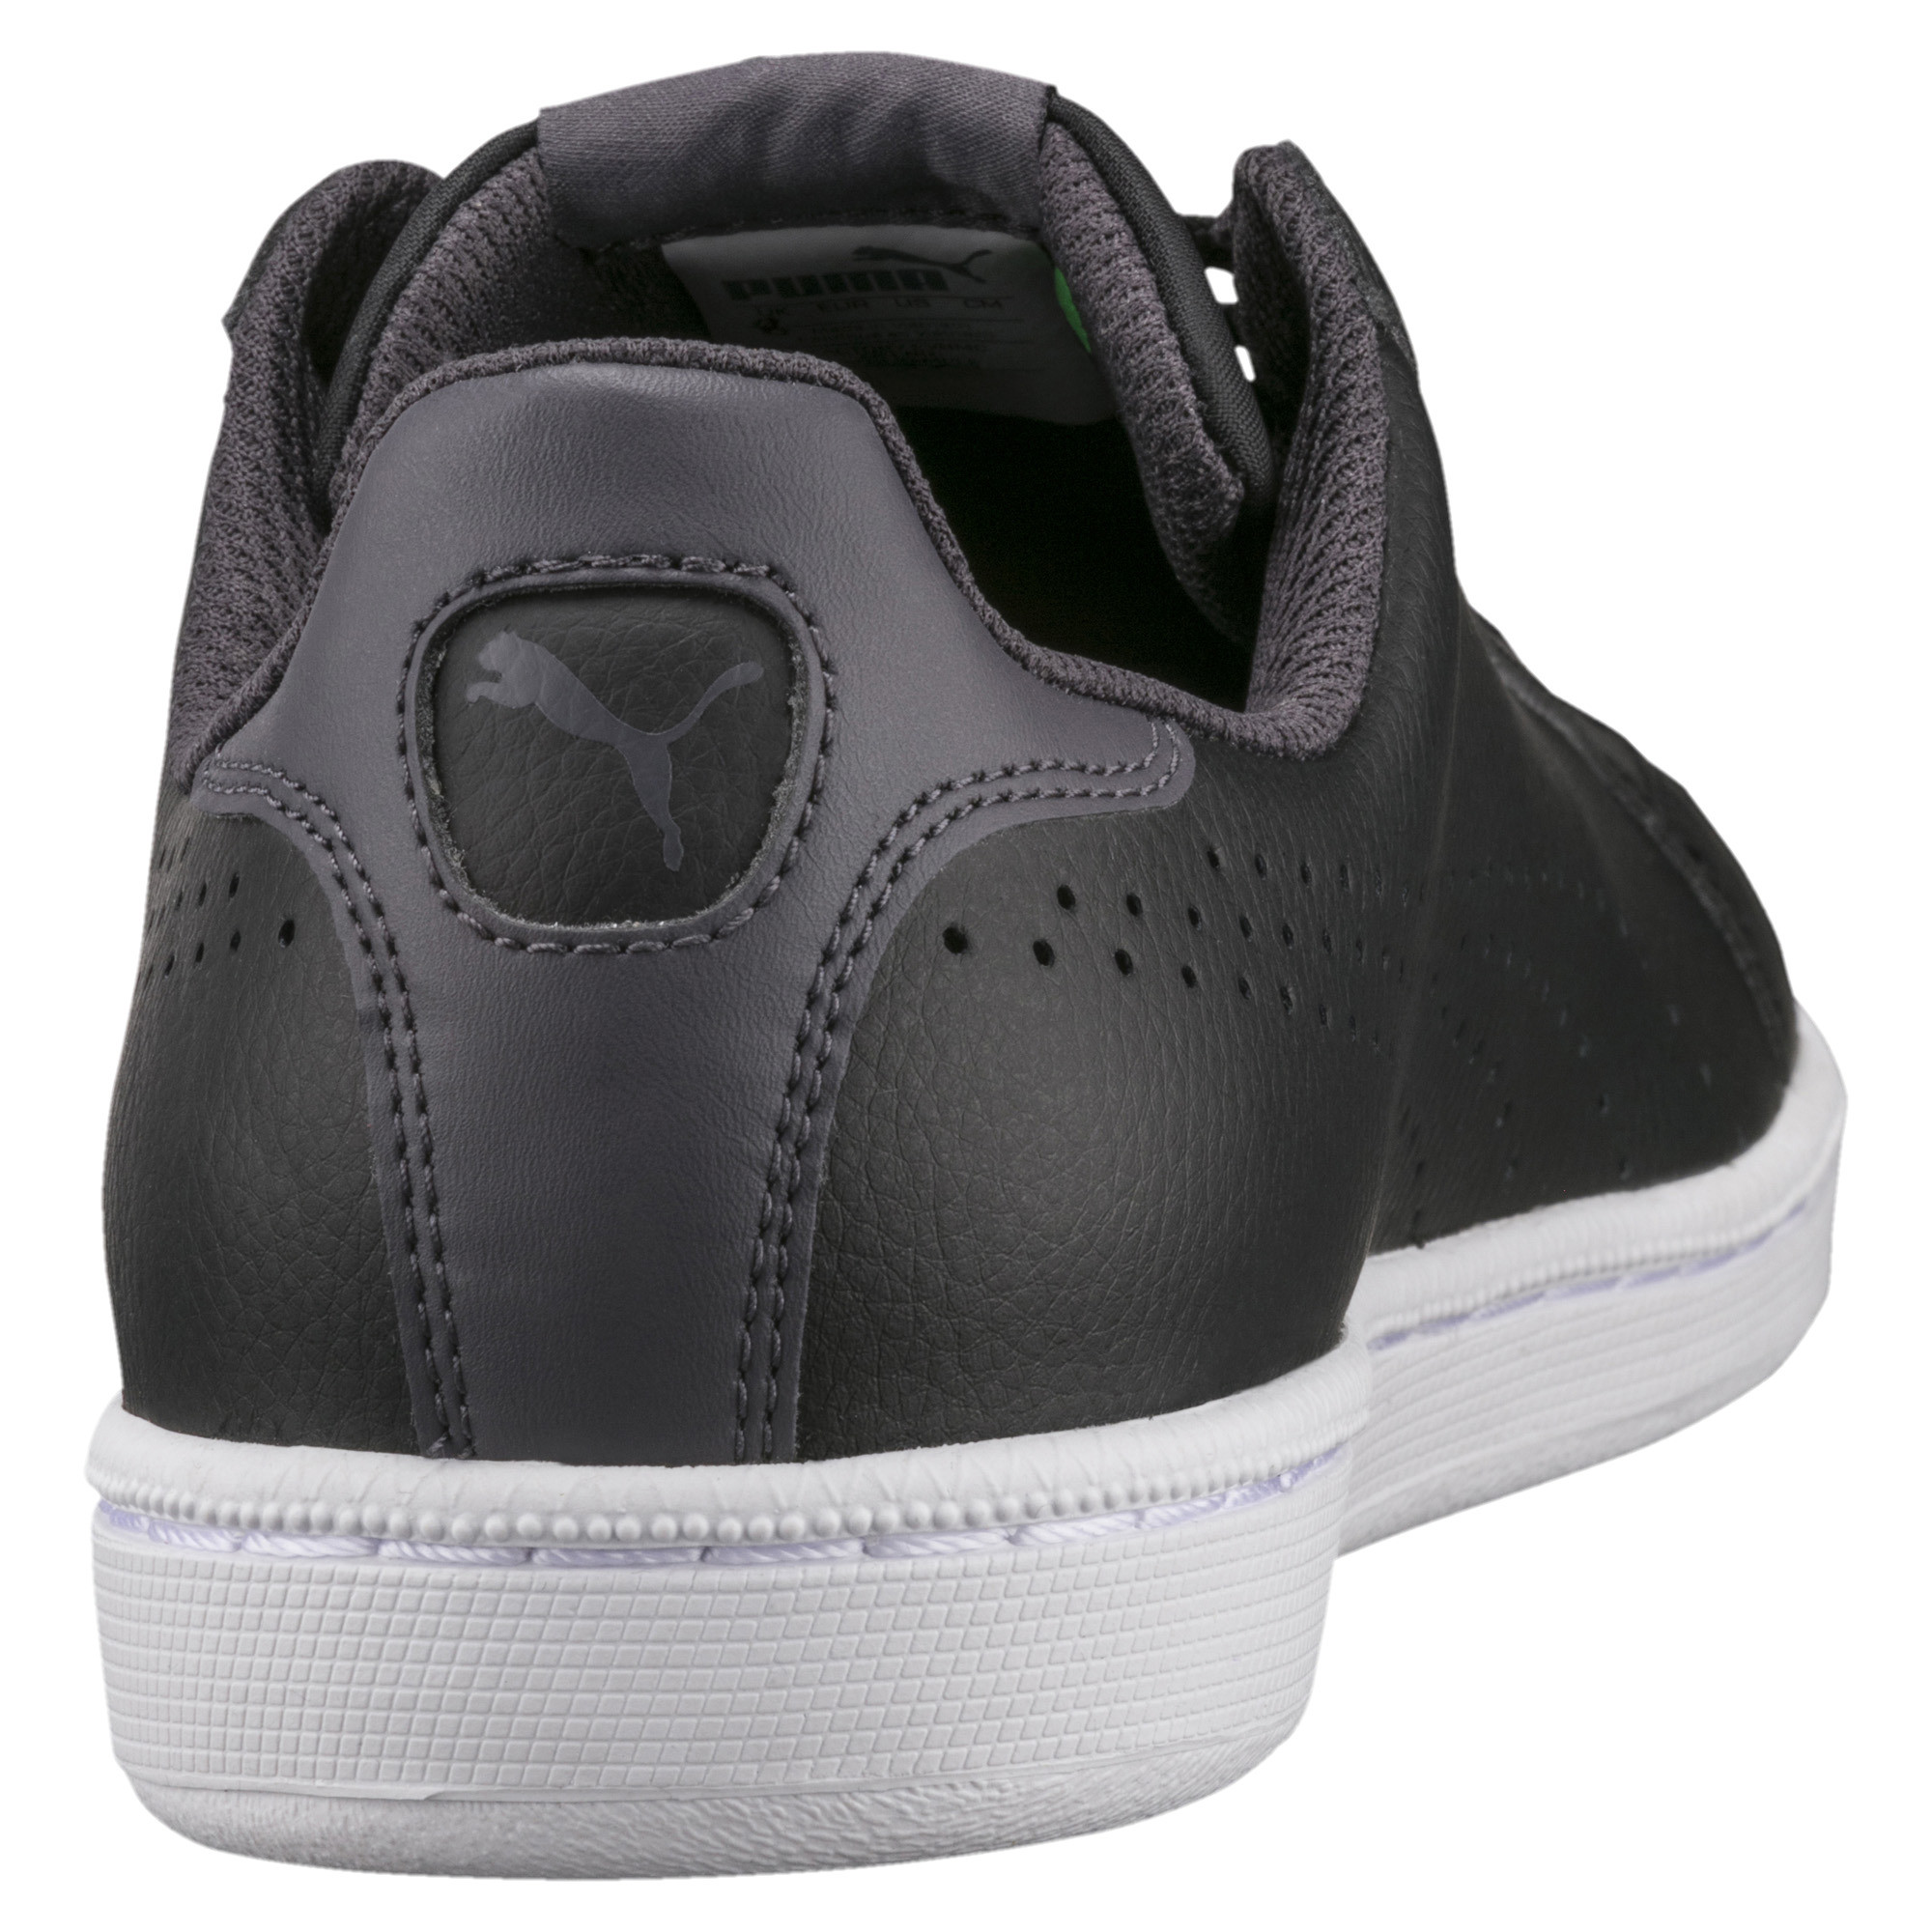 PUMA-PUMA-Smash-Perf-Men-039-s-Sneakers-Men-Shoe-Basics thumbnail 8